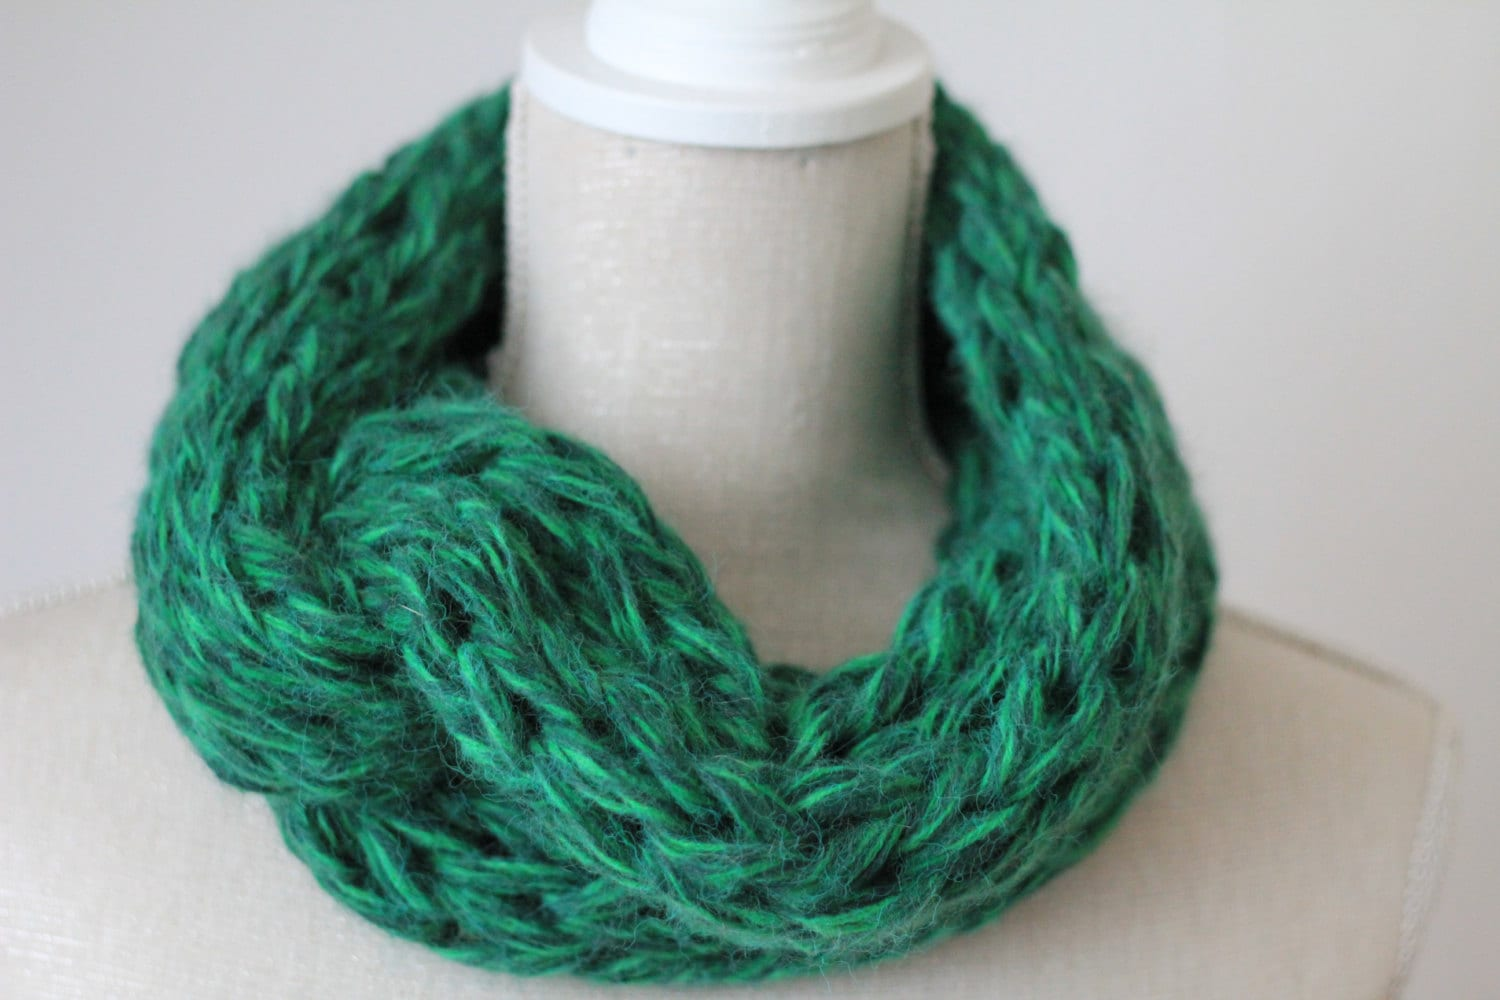 Super soft  INFINITY SCARF shades of green  multi strand super jumbo knit very soft and snuggly  UNISEX  warm and light weight alpaca